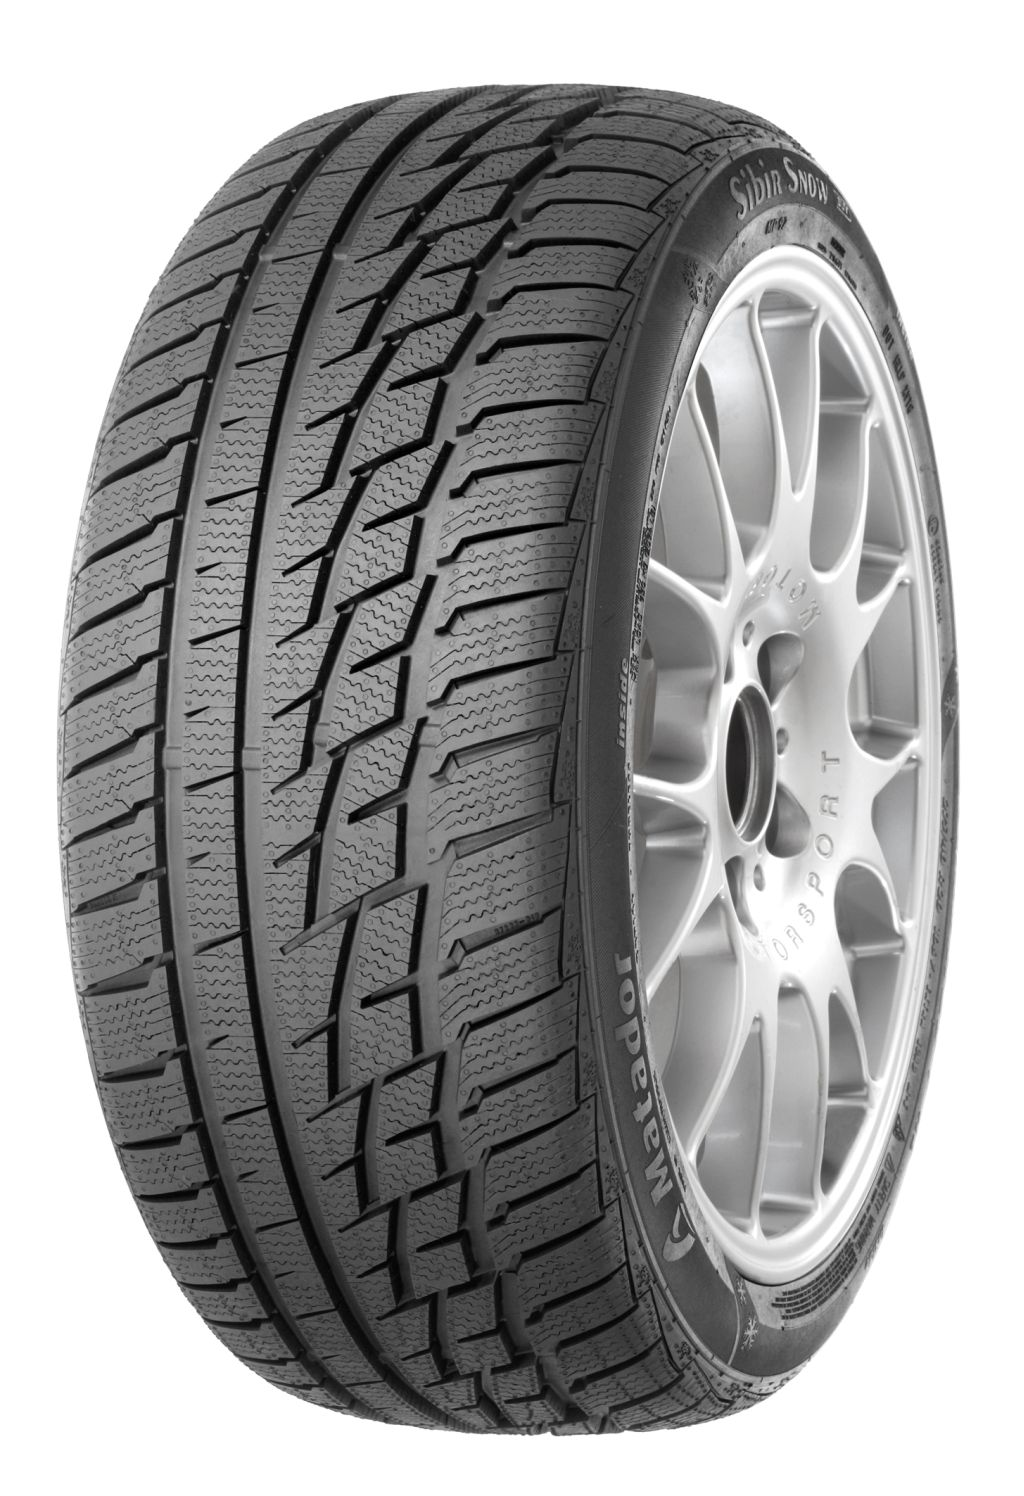 225/50R17 98V, Matador, MP92 Sibir Snow